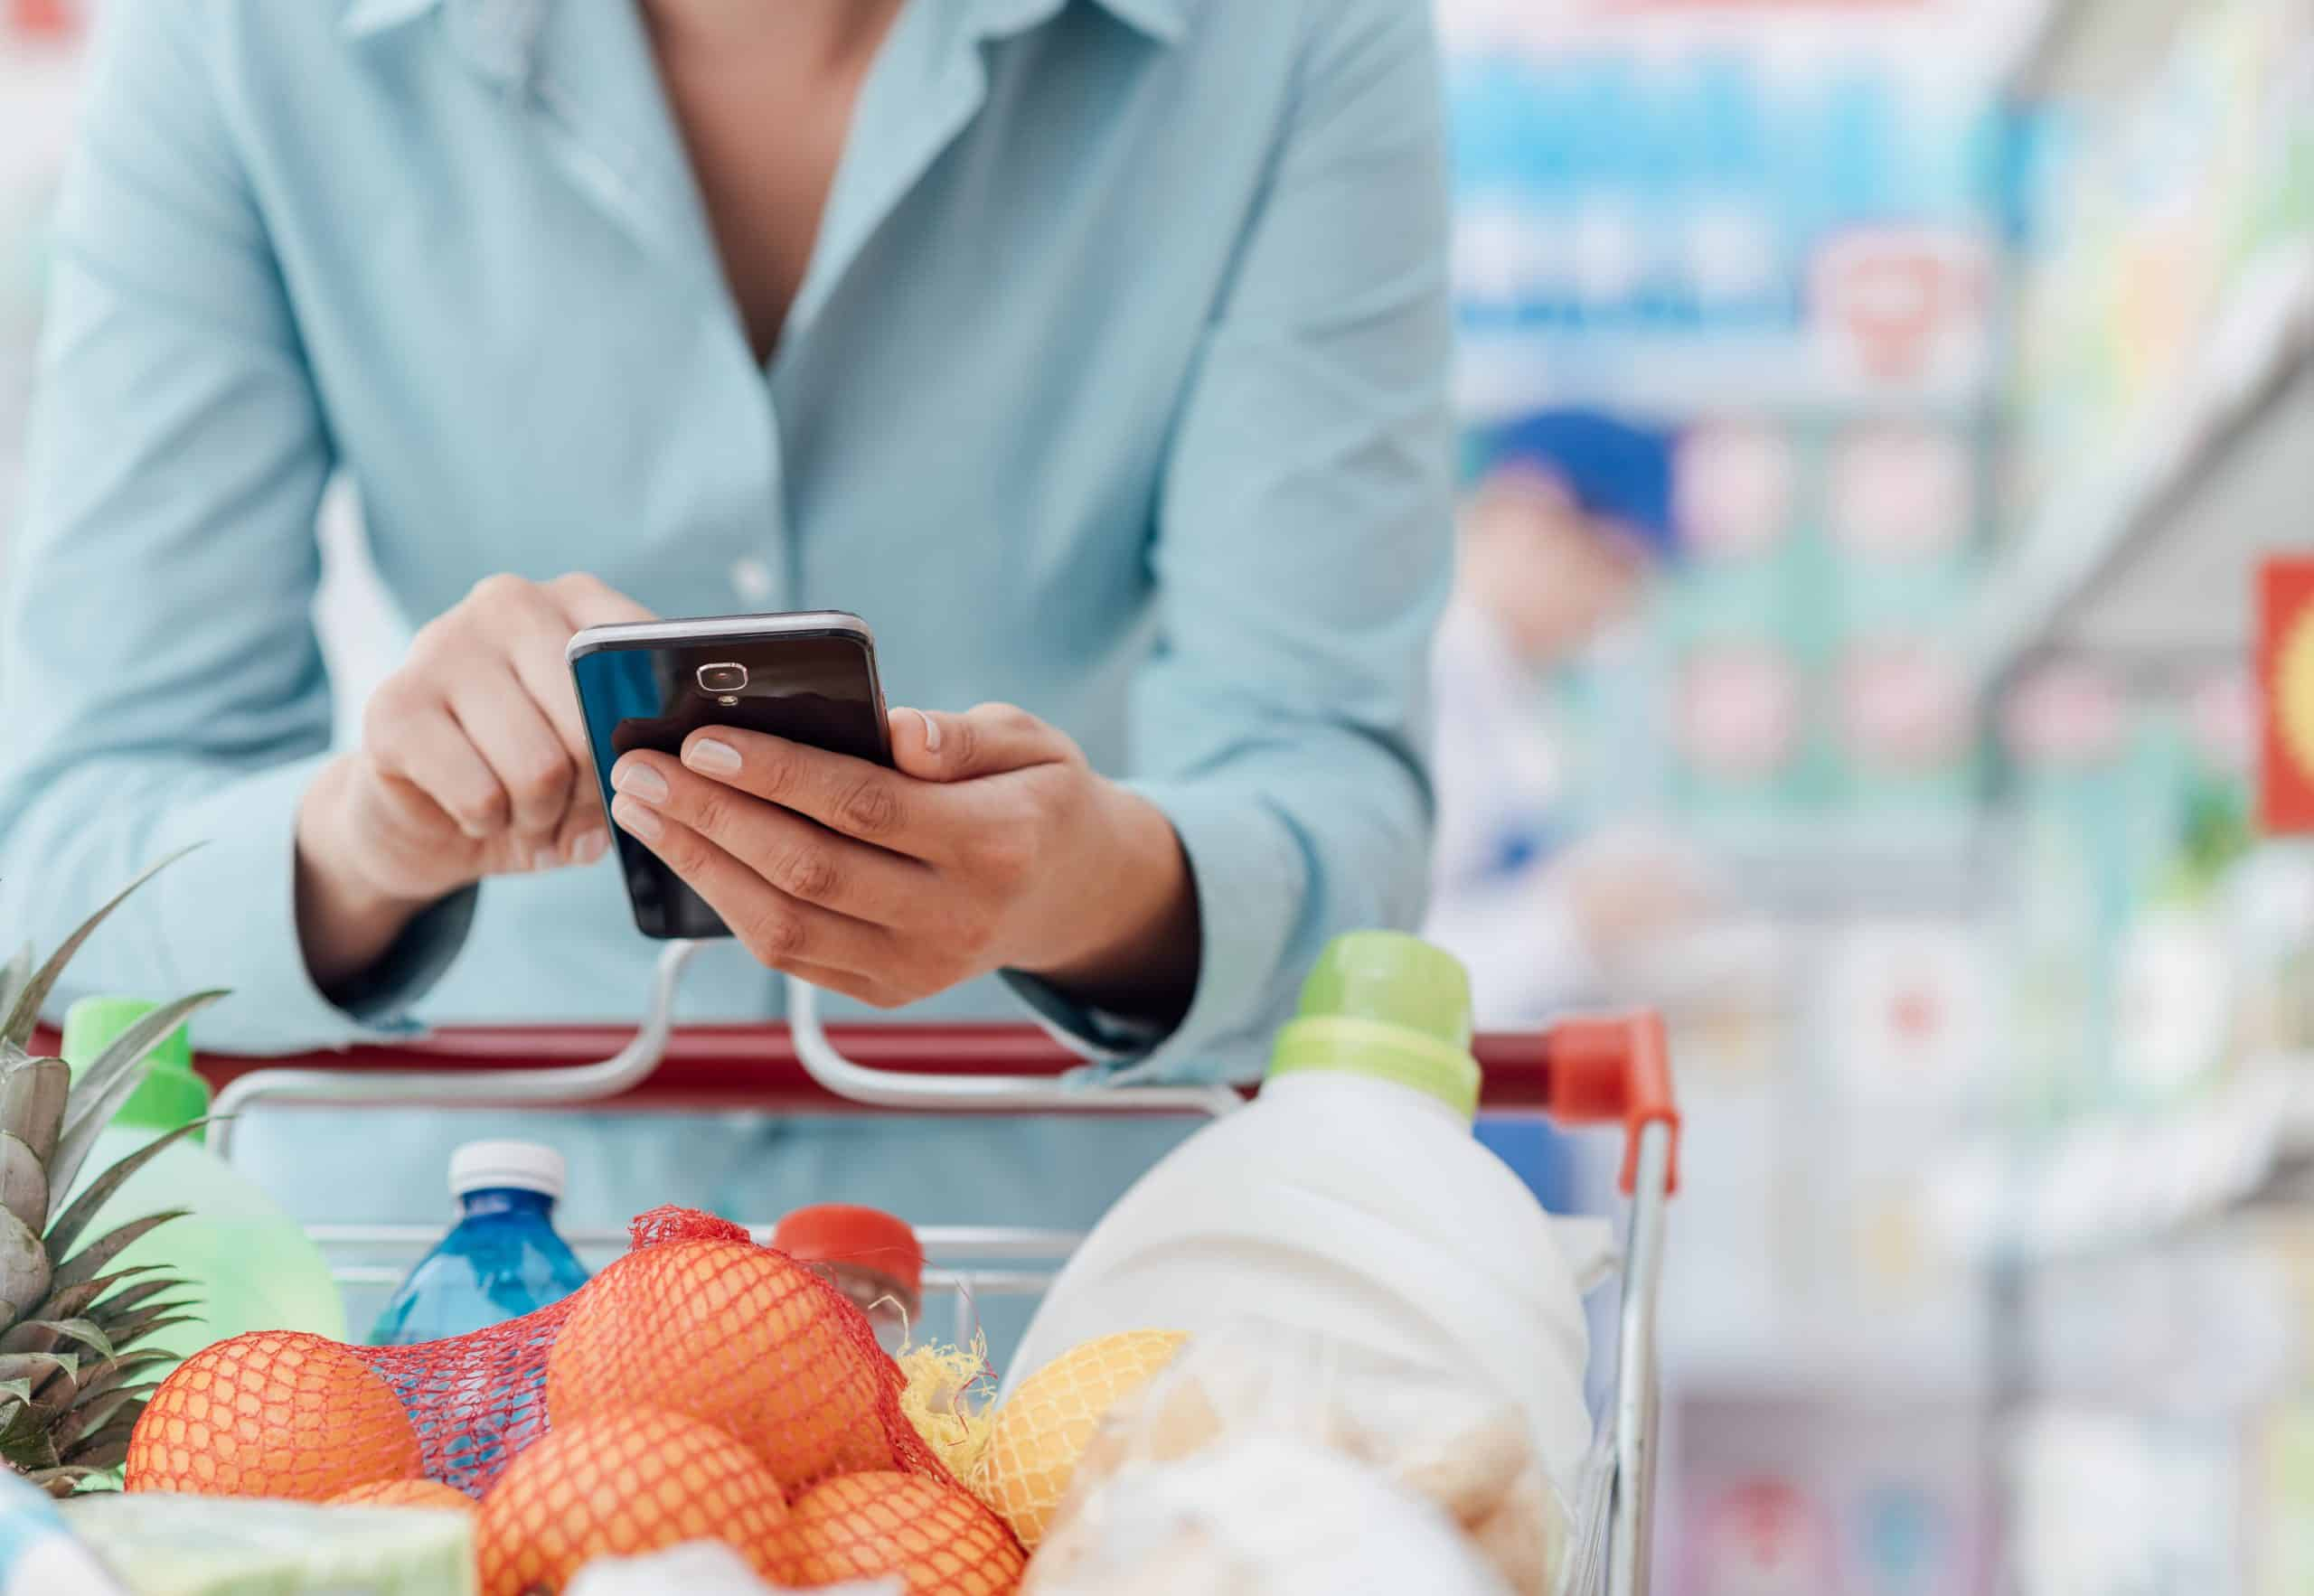 More frugal than your spouse - Woman in blue button-down shirt looking at phone app by her supermarket shopping cart